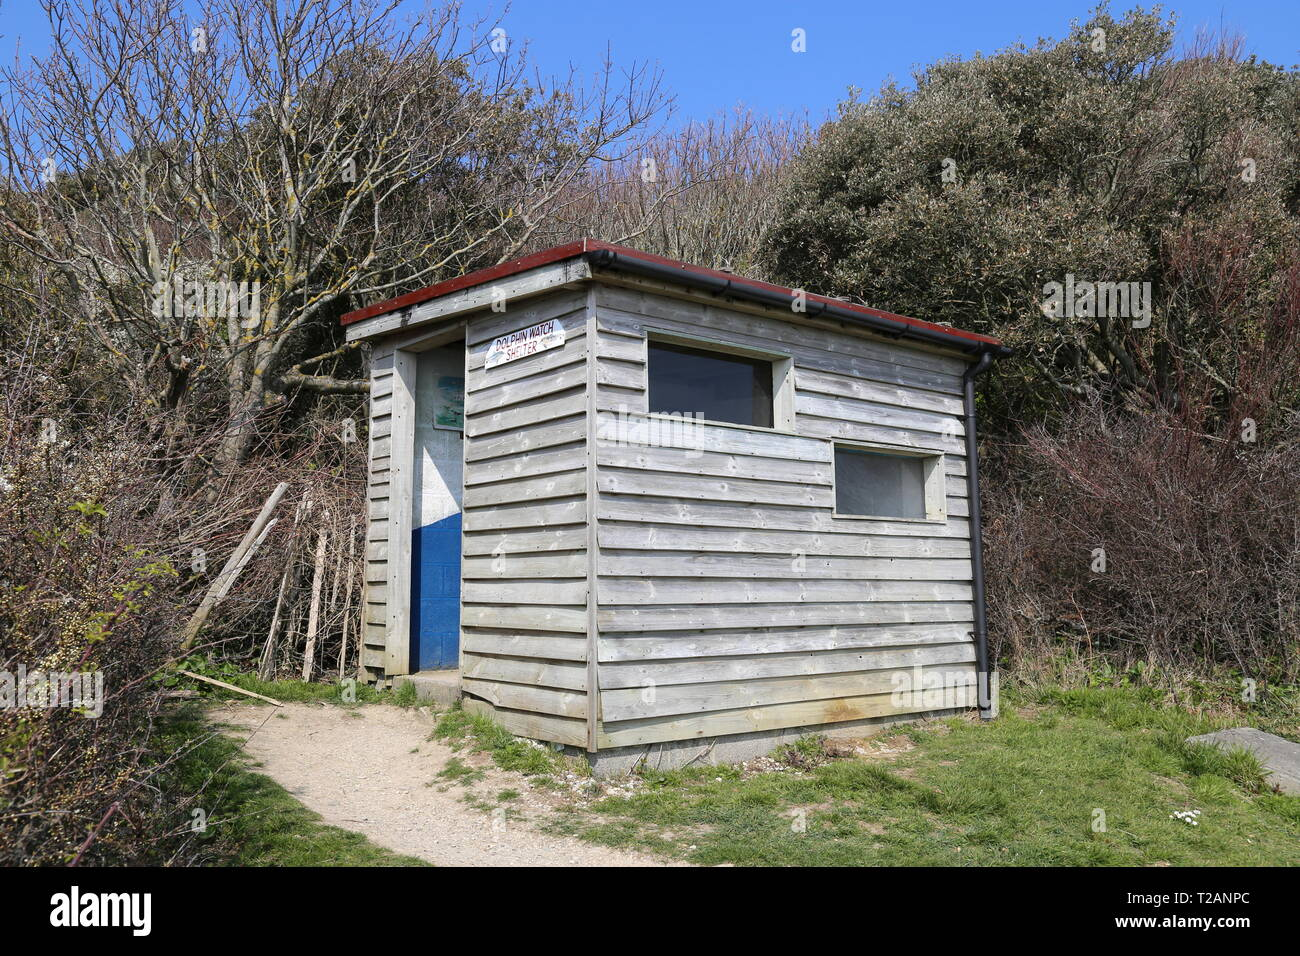 Dolphin Watch shelter, Durlston Country Park, Swanage, Isle of Purbeck, Dorset, England, Great Britain, United Kingdom, UK, Europe - Stock Image